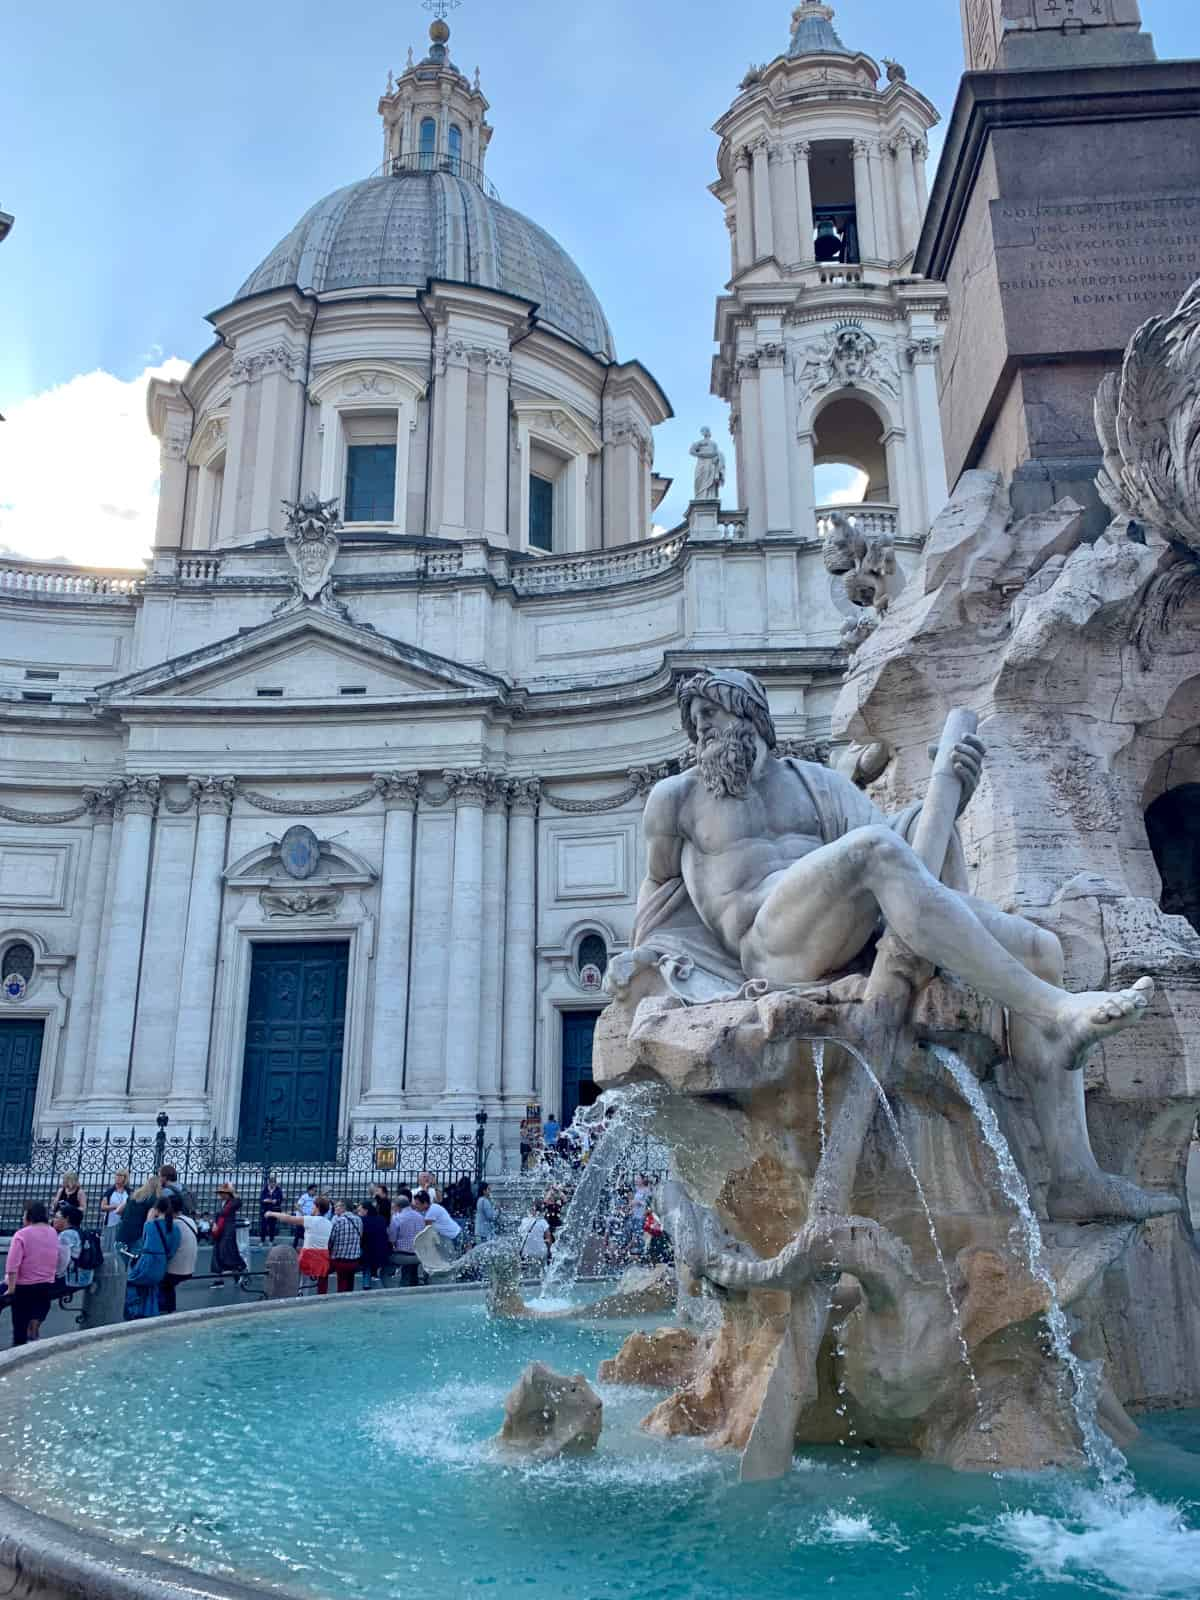 The famous fountain at Piazza Navona...one of the best photo spots in Rome